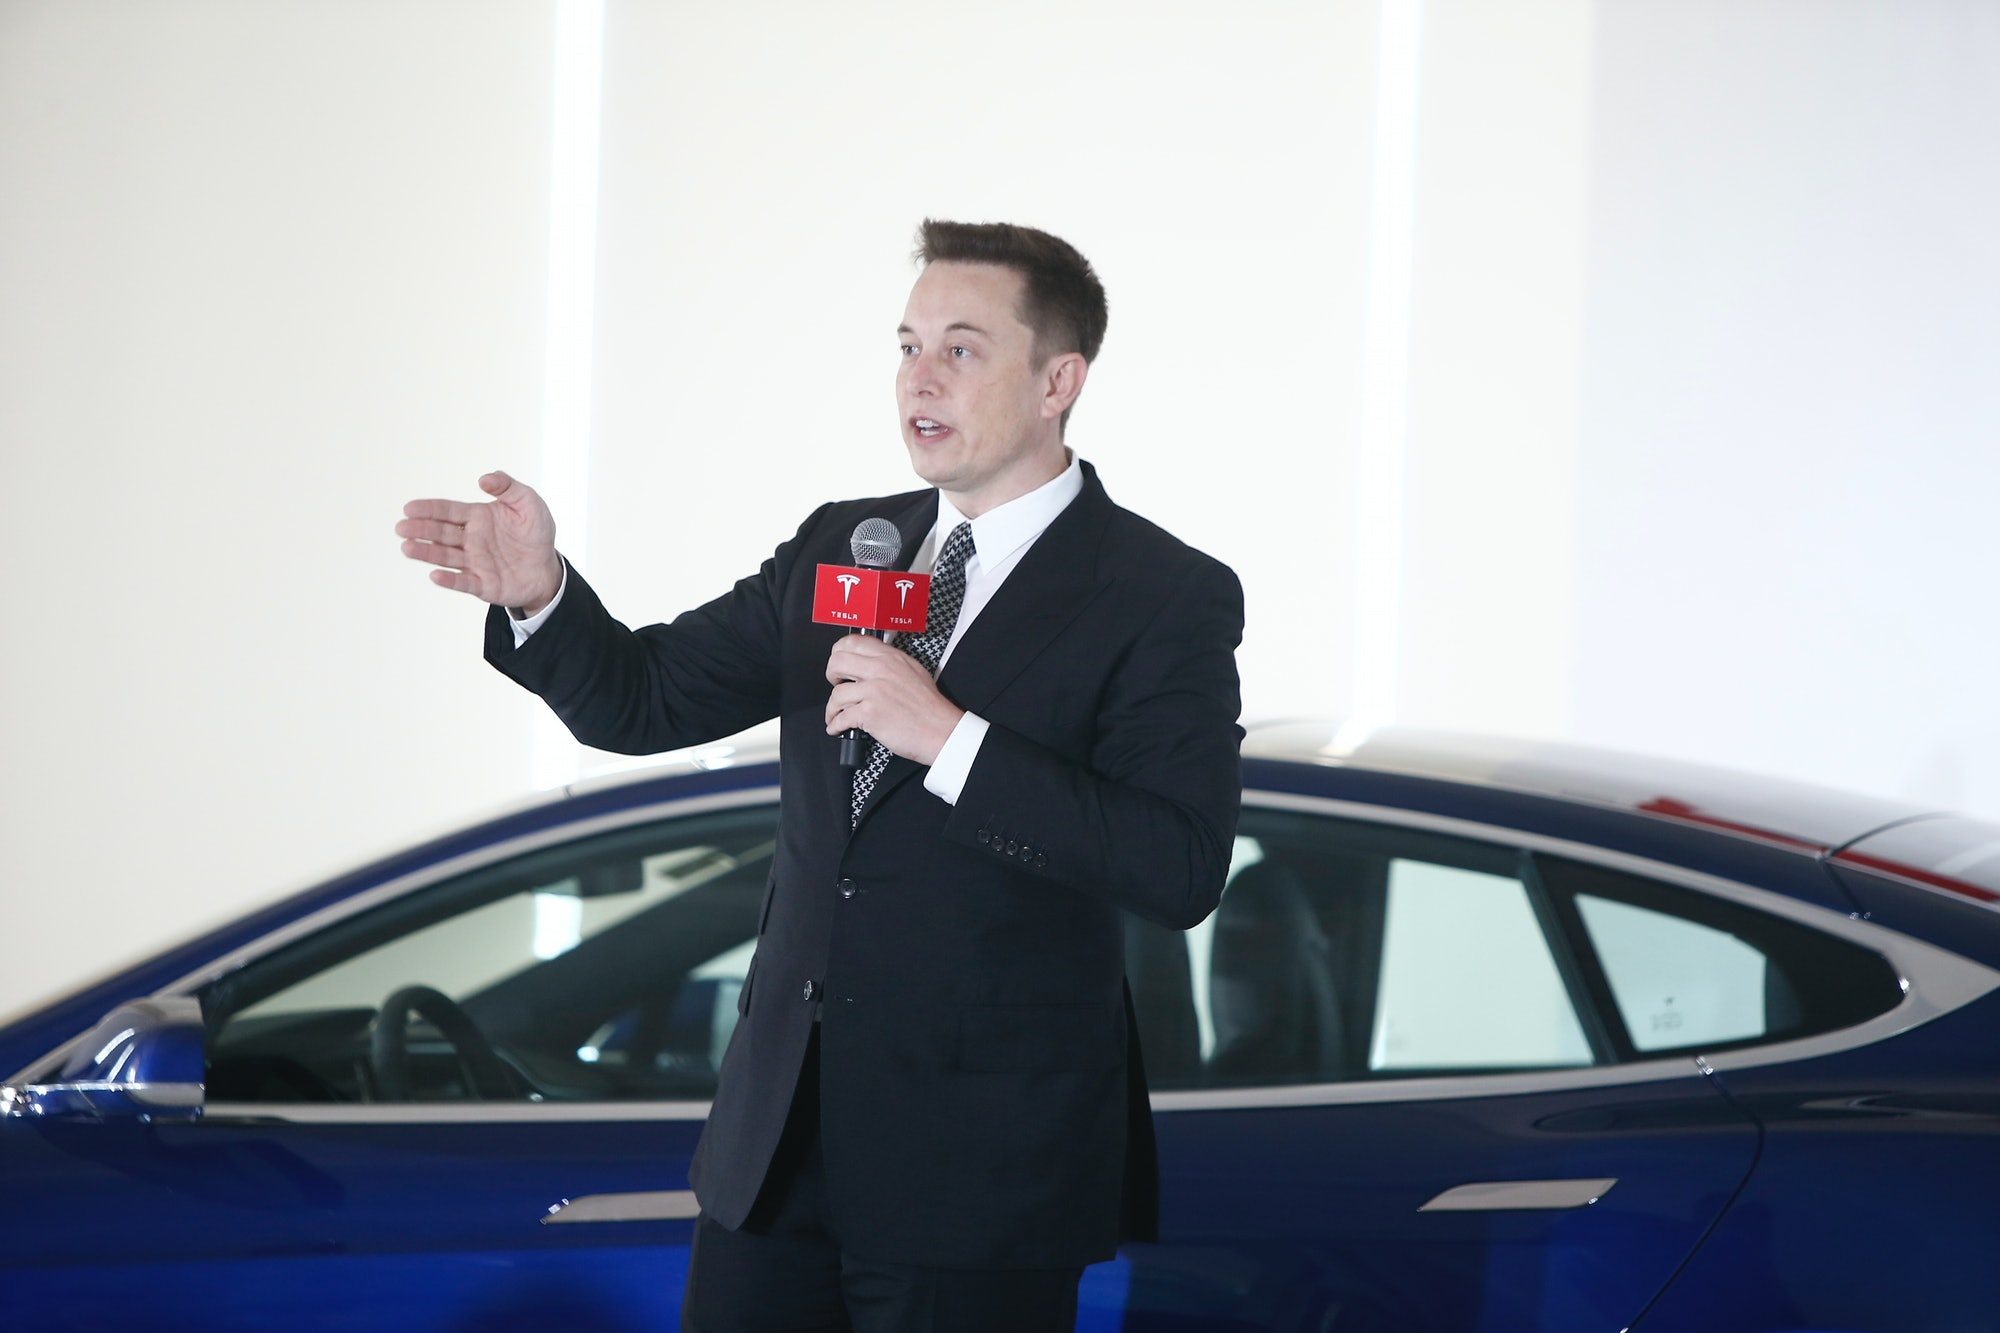 BEIJING, CHINA - OCTOBER 23: (CHINA OUT) Elon Musk, Chairman, CEO and Product Architect of Tesla Motors, addresses a press conference to declare that the Tesla Motors releases v7.0 System in China on a limited basis for its Model S, which will enable self-driving features such as Autosteer for a select group of beta testers on October 23,2015in Beijing, China. The v7.0 system includes Autosteer, a new Autopilot feature. While it's not absolutely self-driving and the driver stillneedto hold the steering wheel and be mindful of road conditions and surrounding traffic when using Autosteer. When set to the new Autosteer mode, graphics on the driver's display will show the path the Model S is following, post the current speed limit and indicate if a car is in front of the Tesla. (Photo by VCG/VCG via Getty Images)